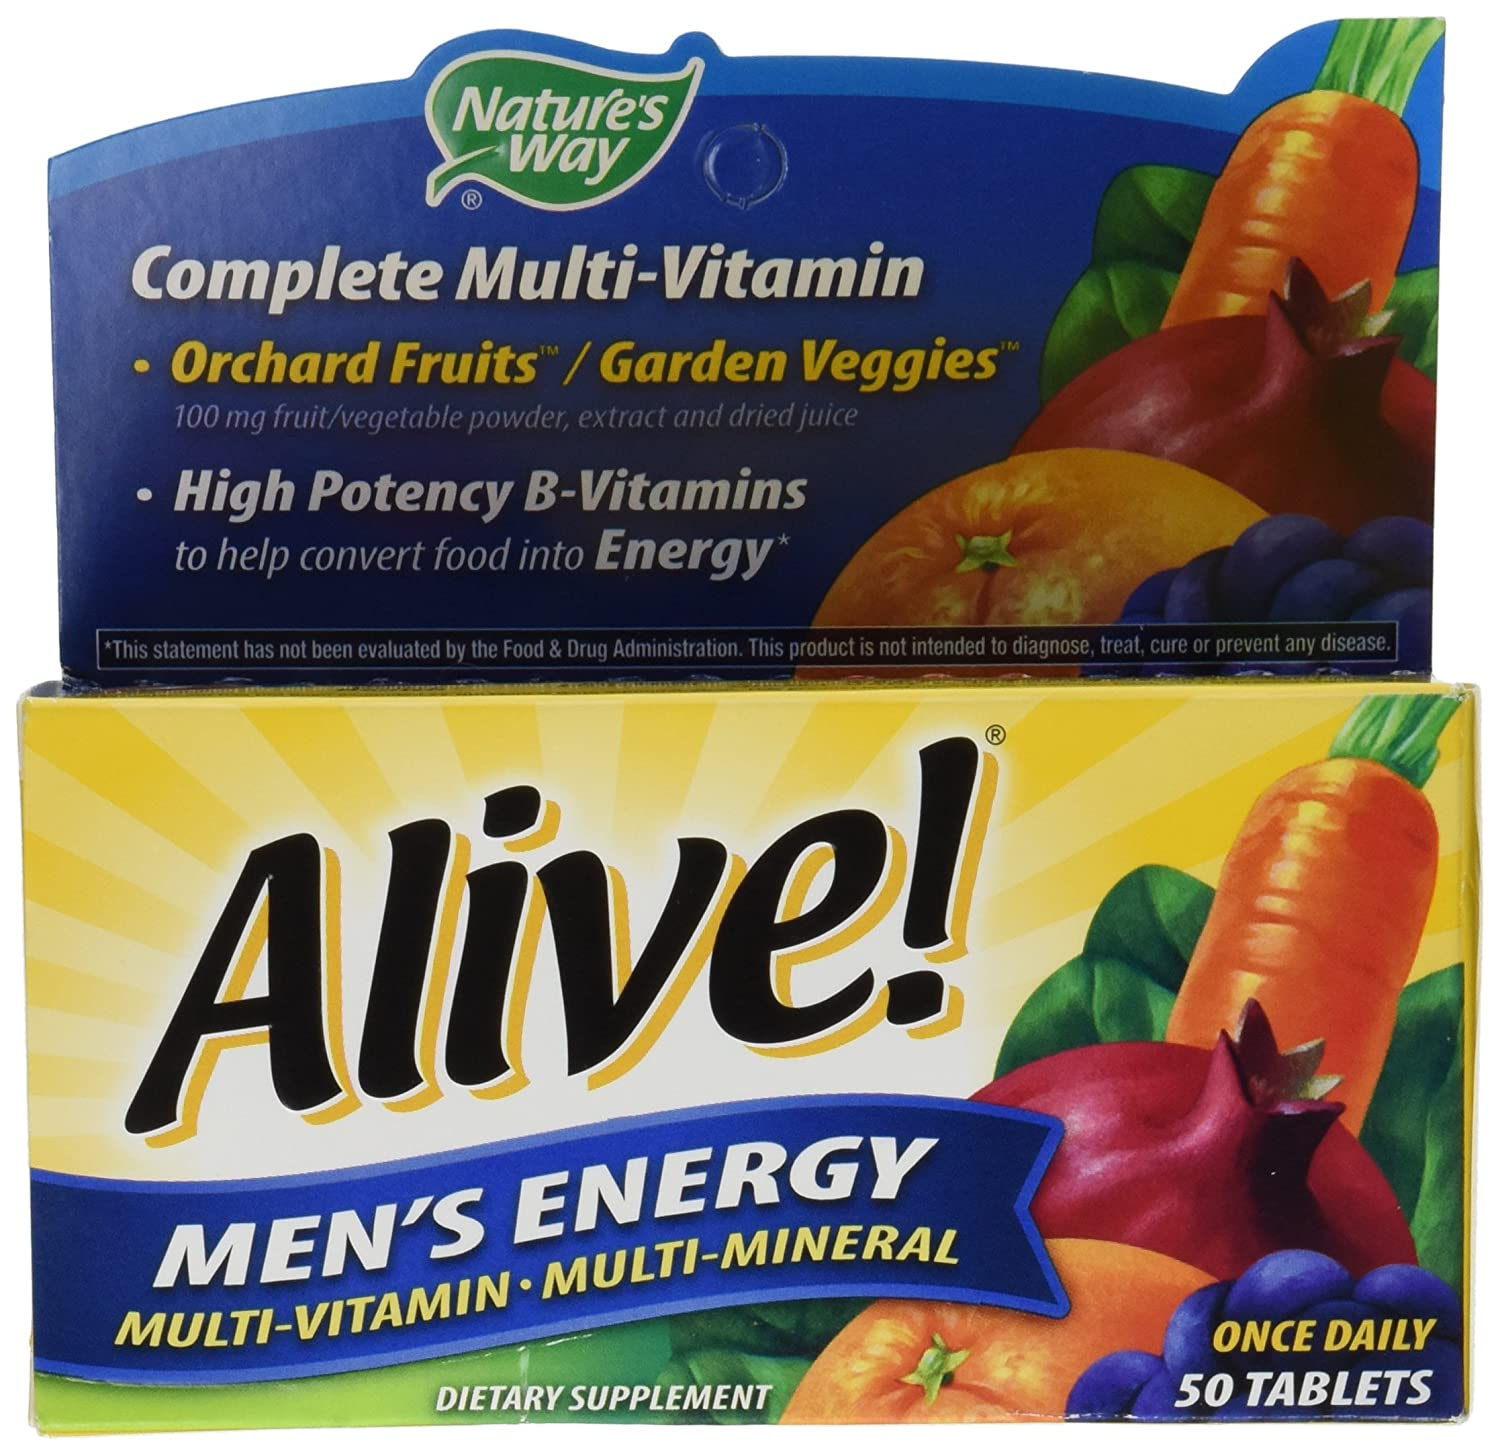 Natures Way, Alive! Mens Energy Multivitamin & Multimineral, x50tabs: Amazon.es: Salud y cuidado personal